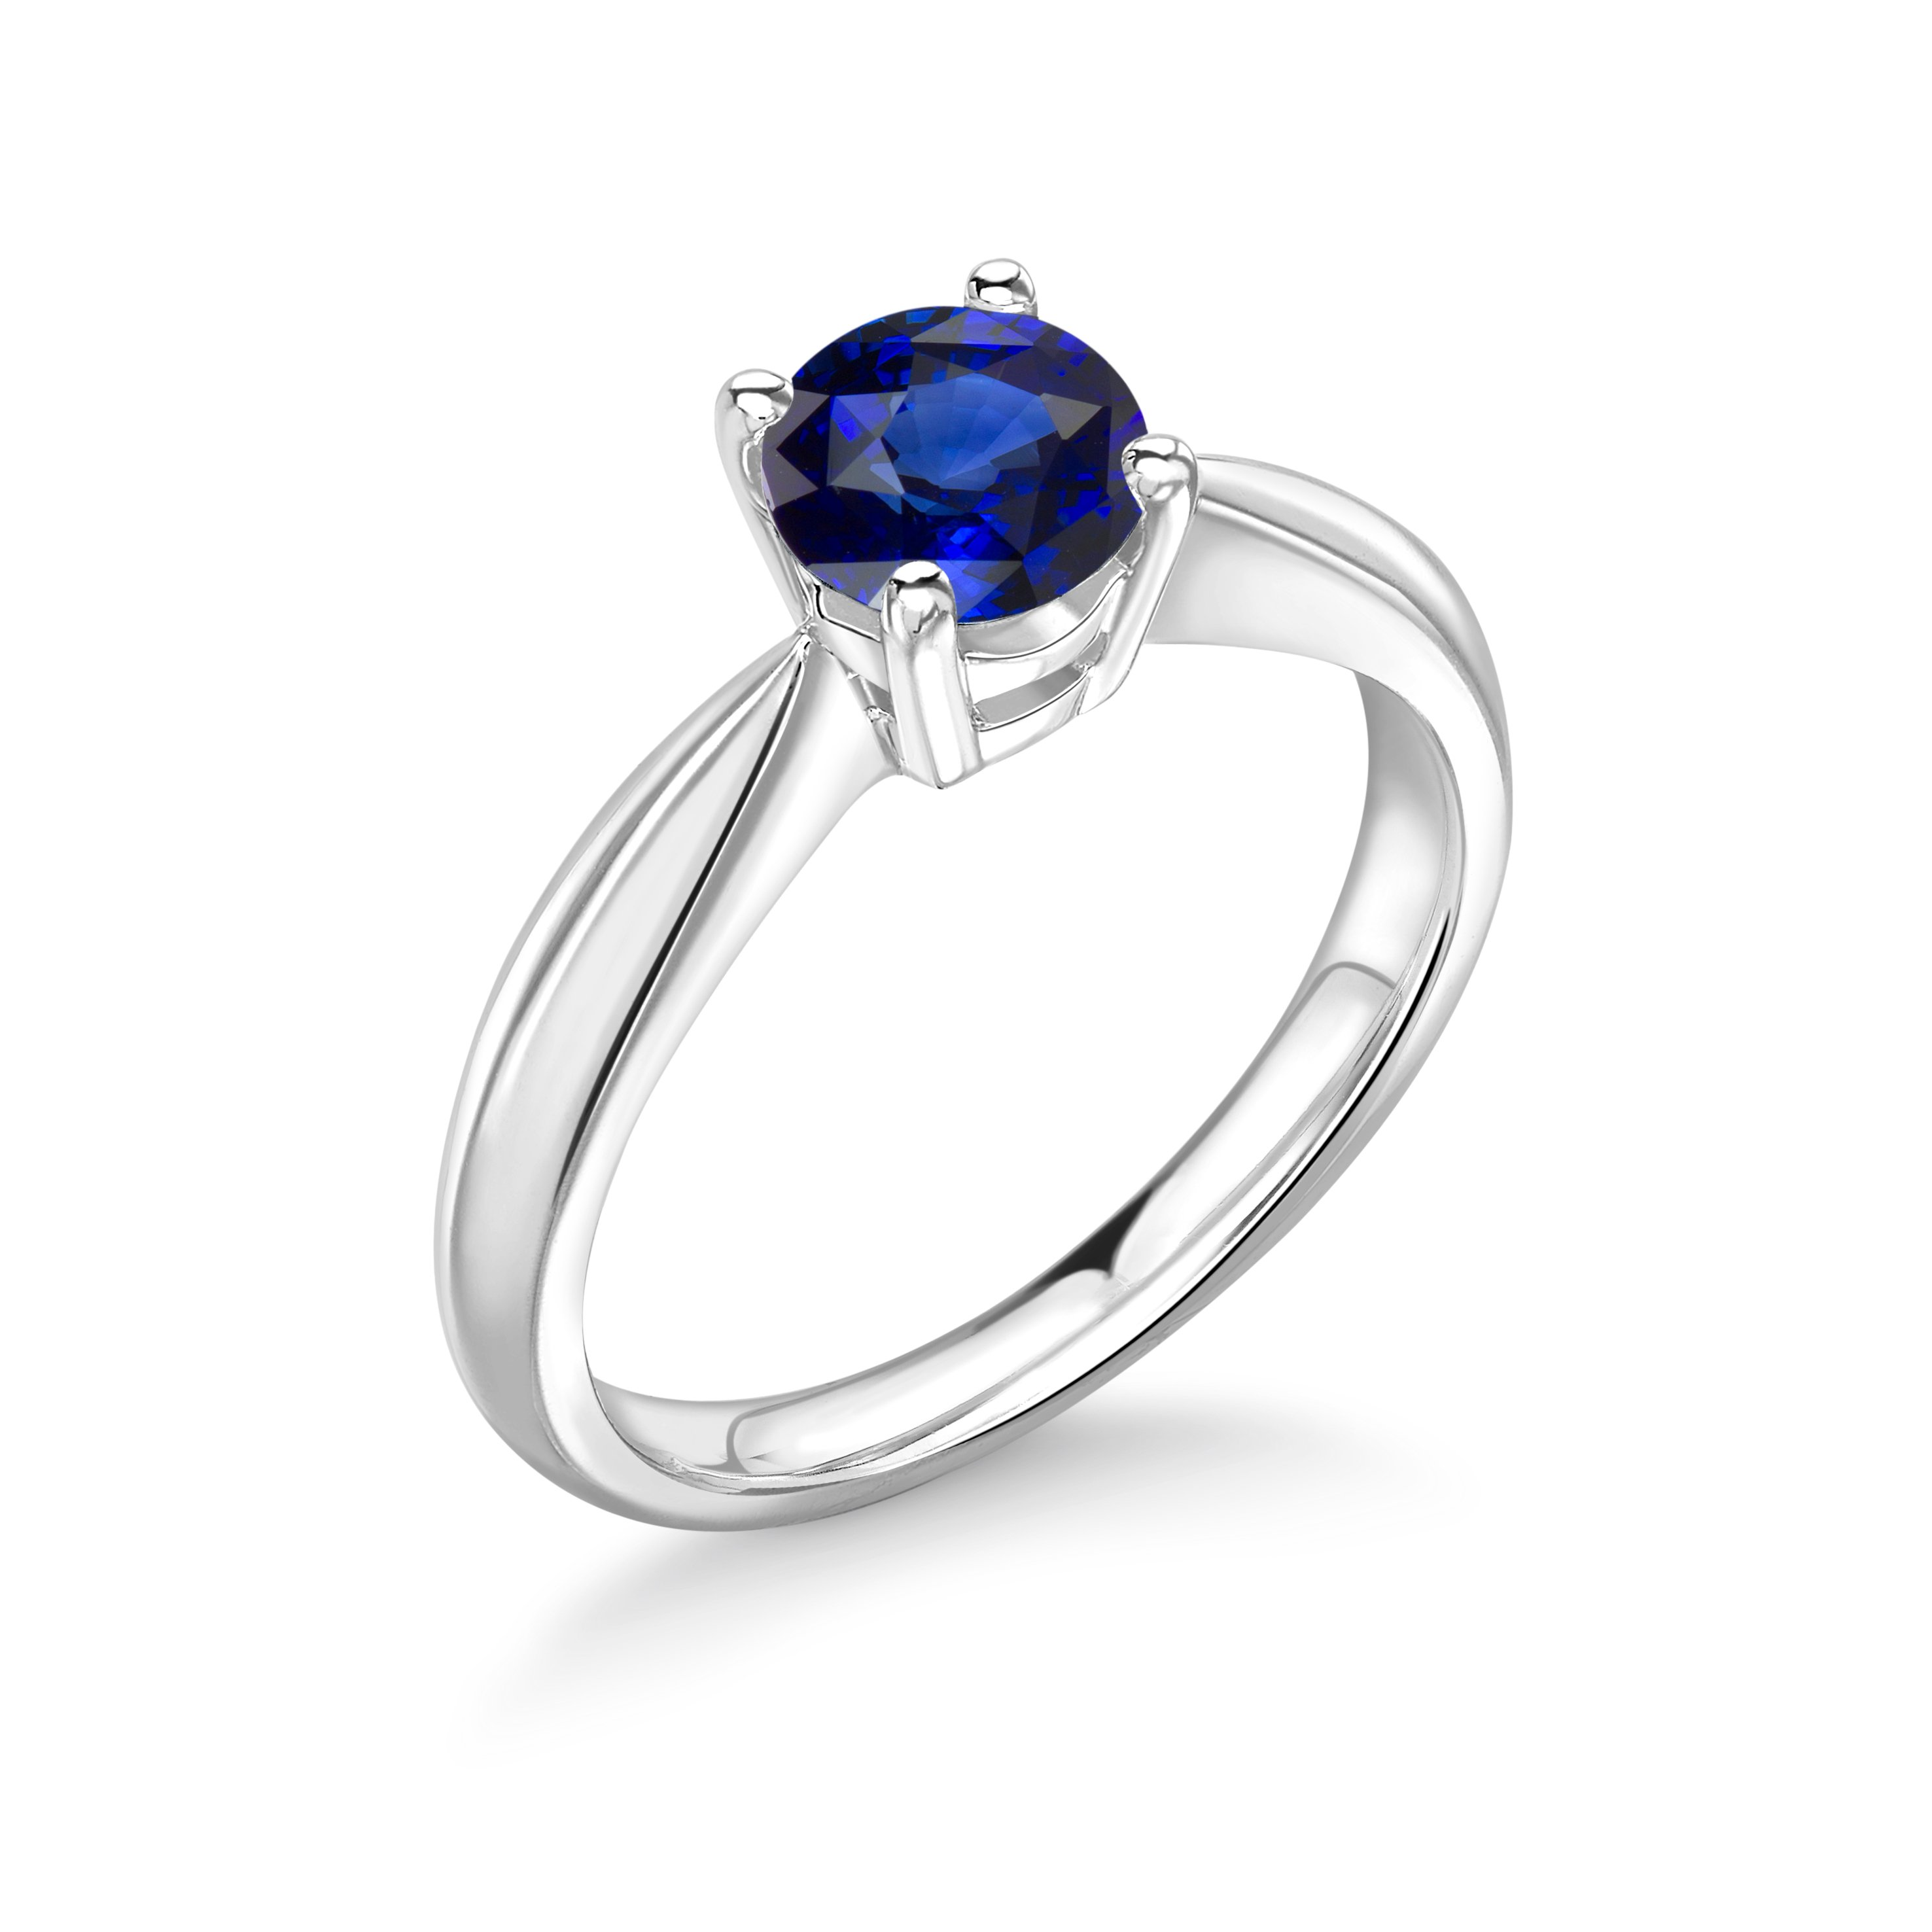 Elegant 4 Prong Set Round Solitaire Sapphire Engagement Rings UK